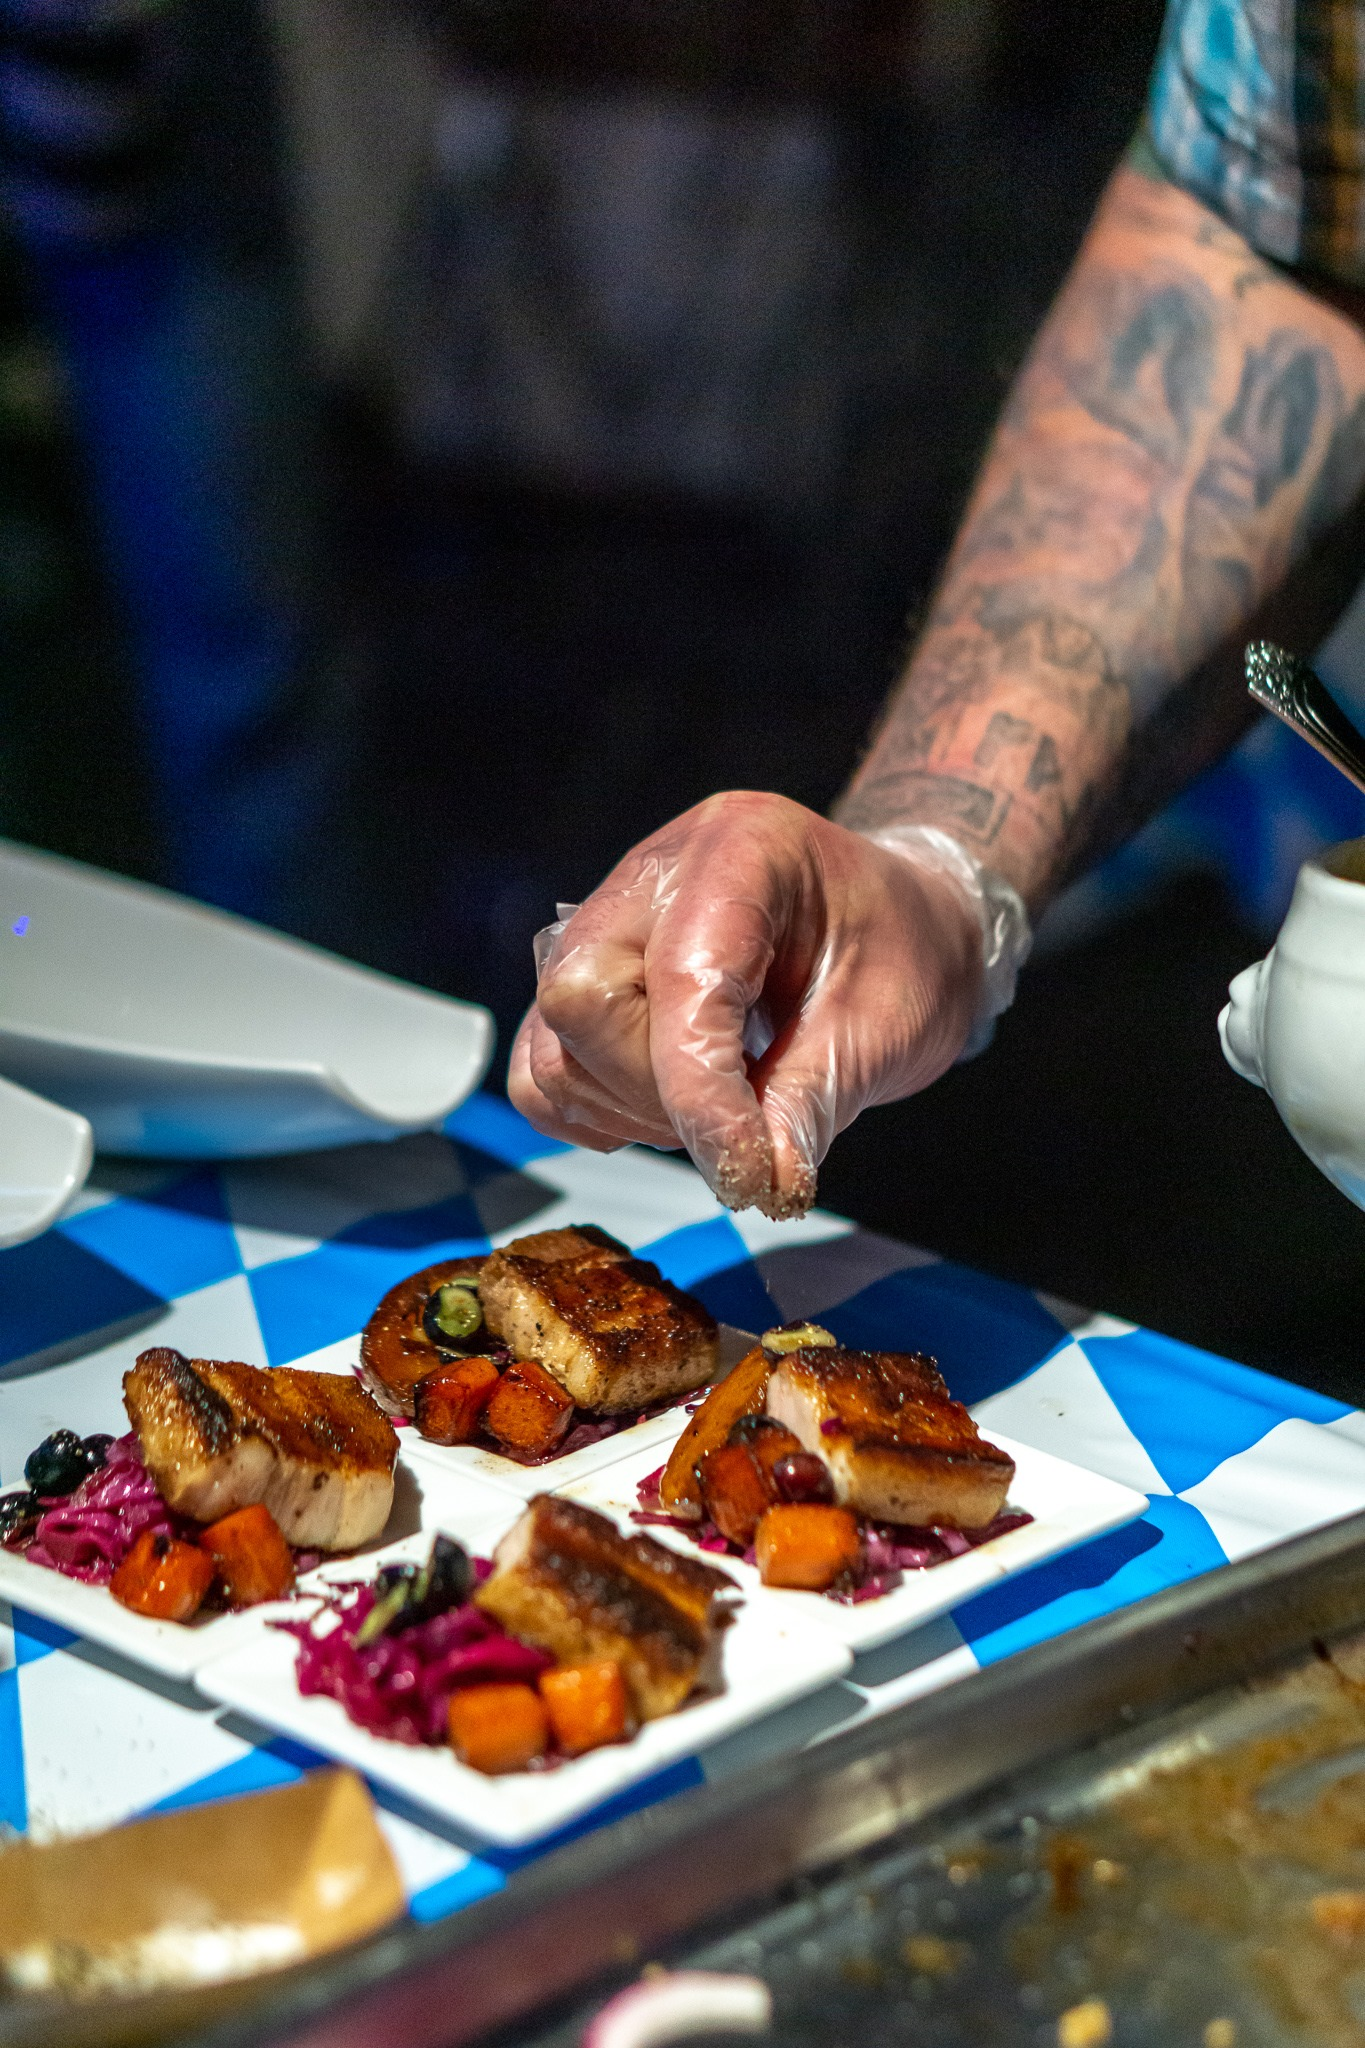 Chef Battle Midwest Regionals Come to Chicago on April 28 at STK